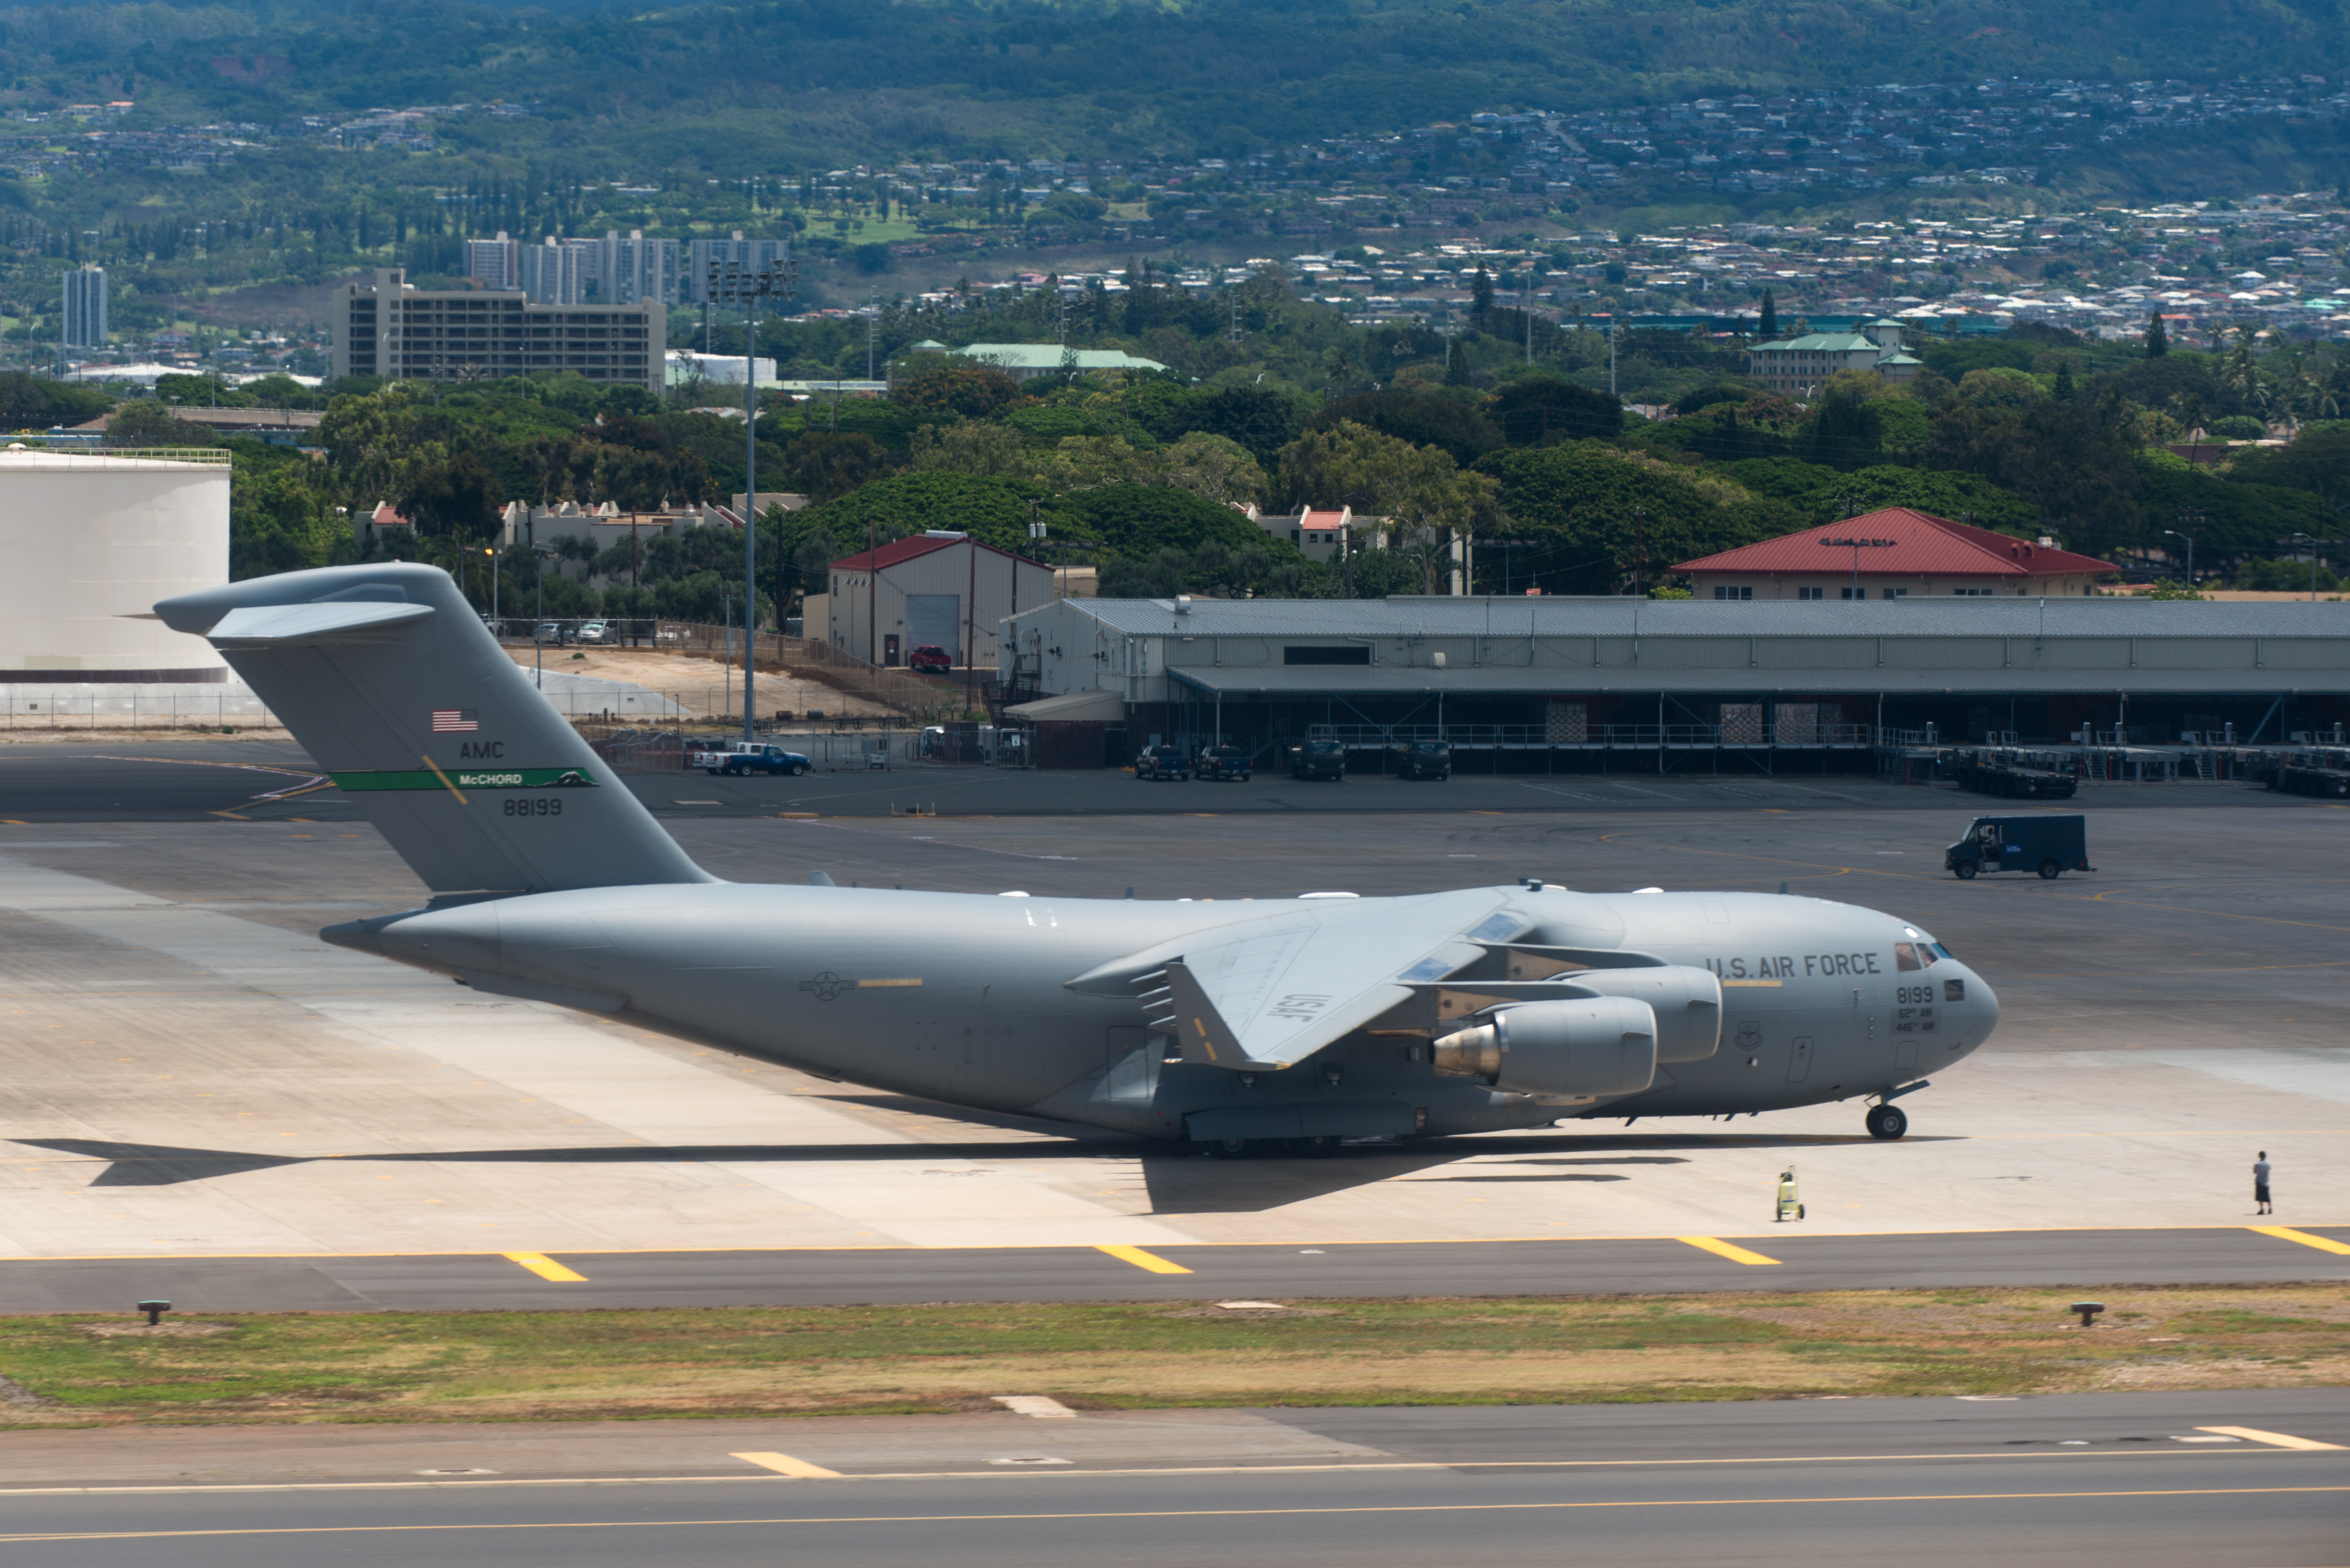 Profile view of u.s. air force jet on tarmac at joint base pearl harbor-hickam photo